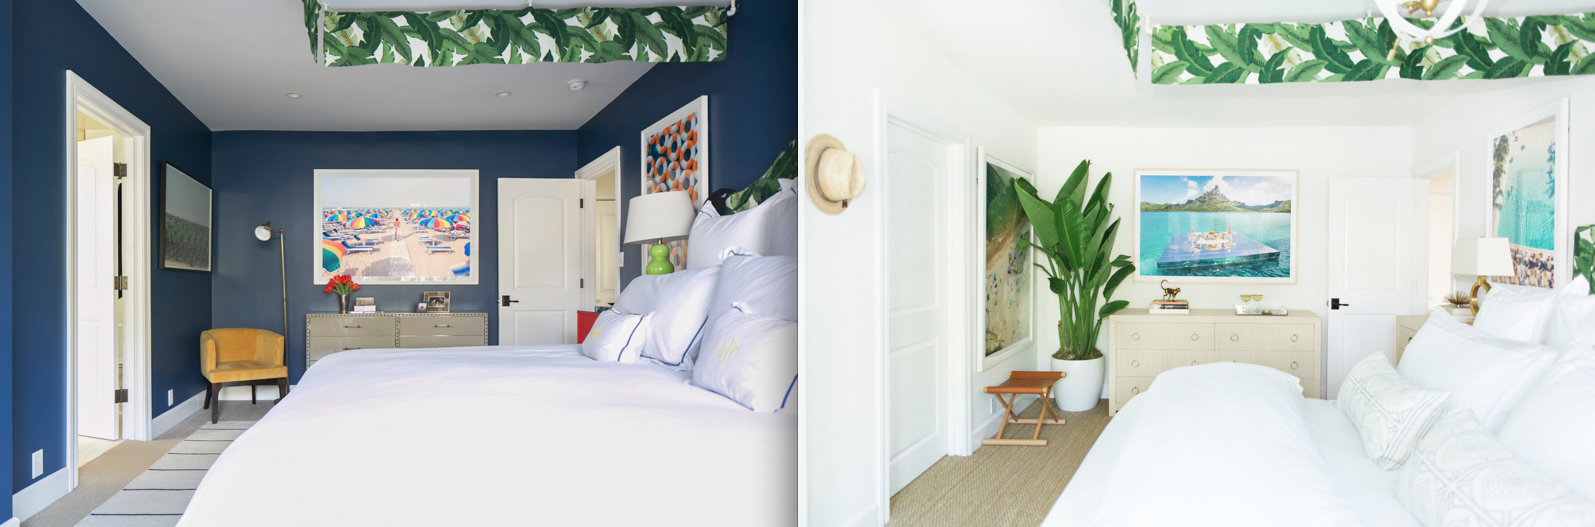 Gray Malin Bedroom Redesign - Before & After